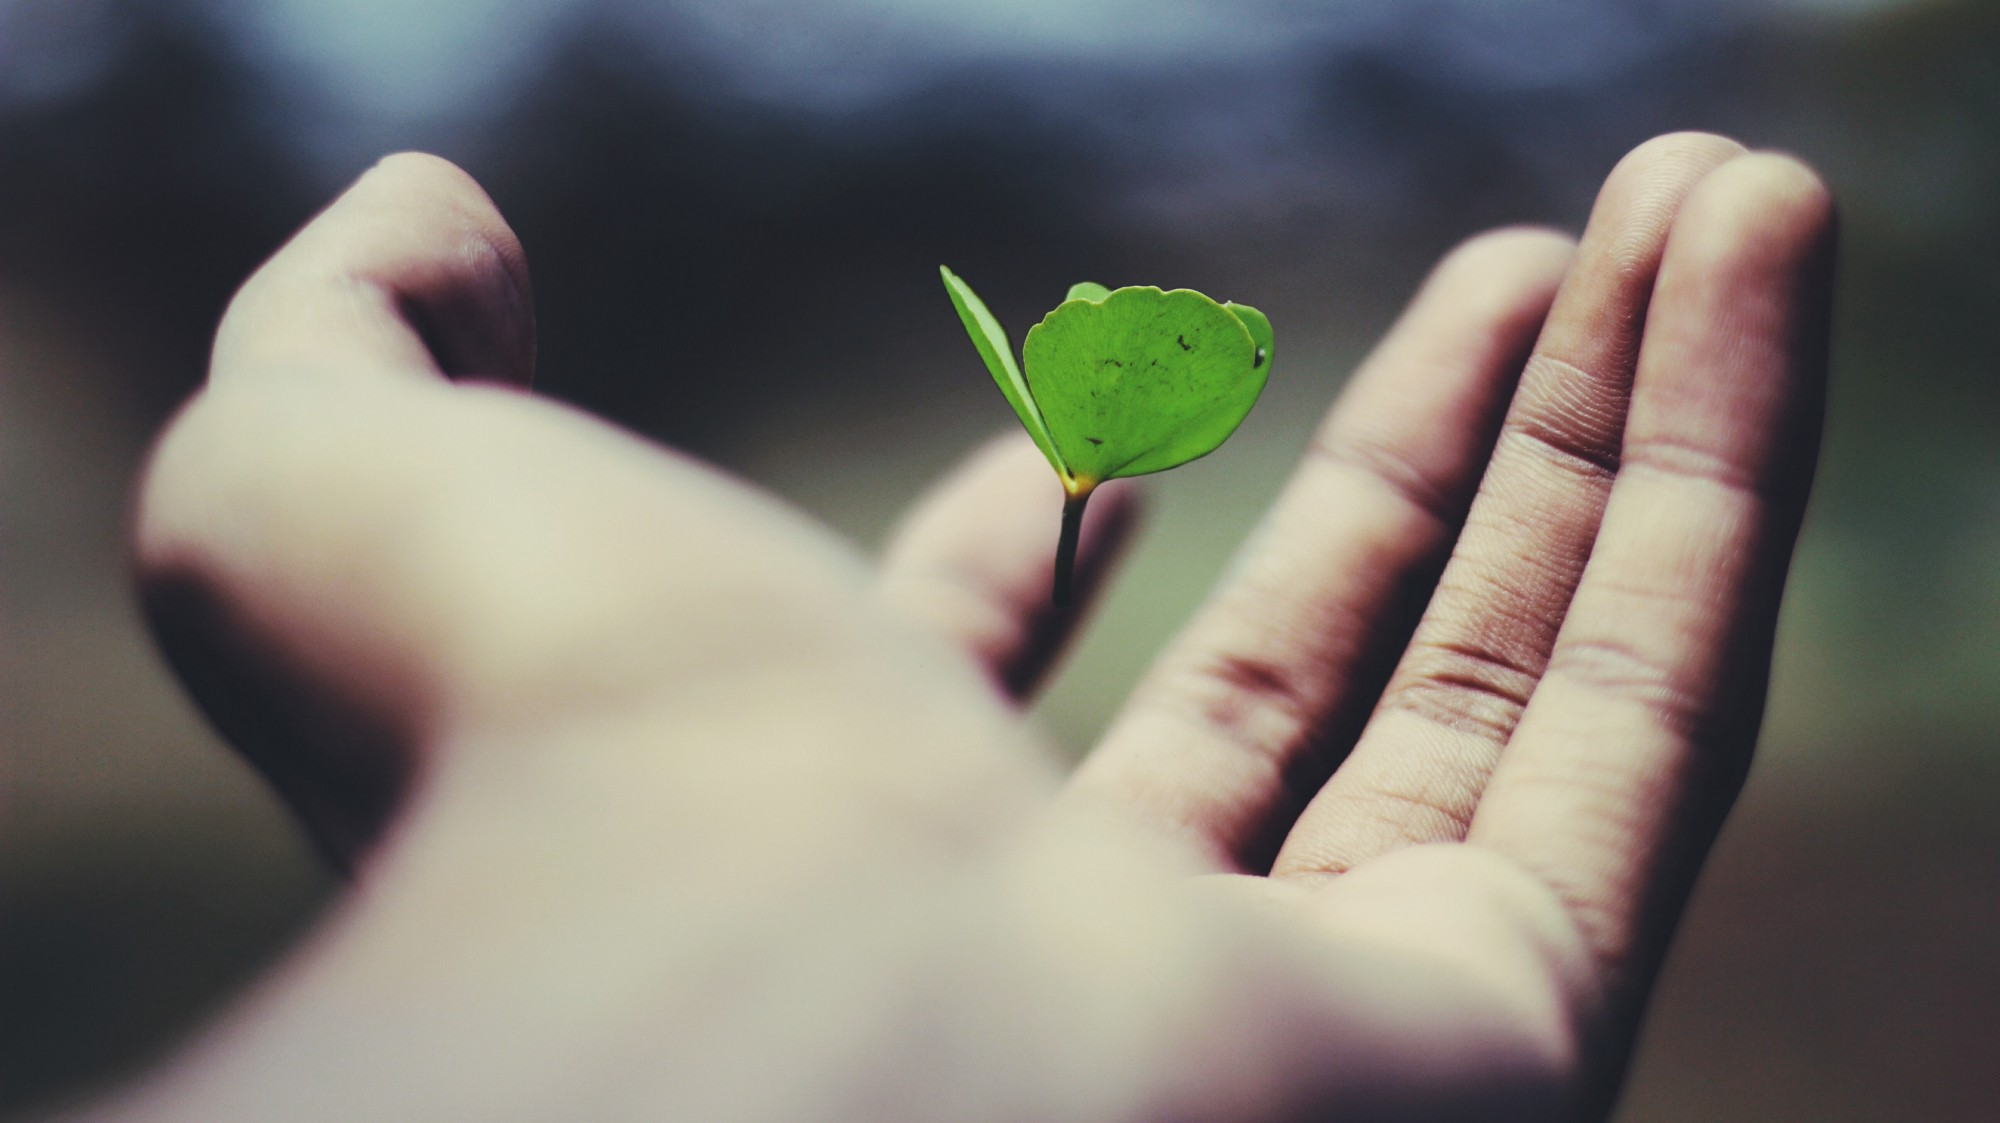 A small green sprout with 3 leaves falling into an open hand